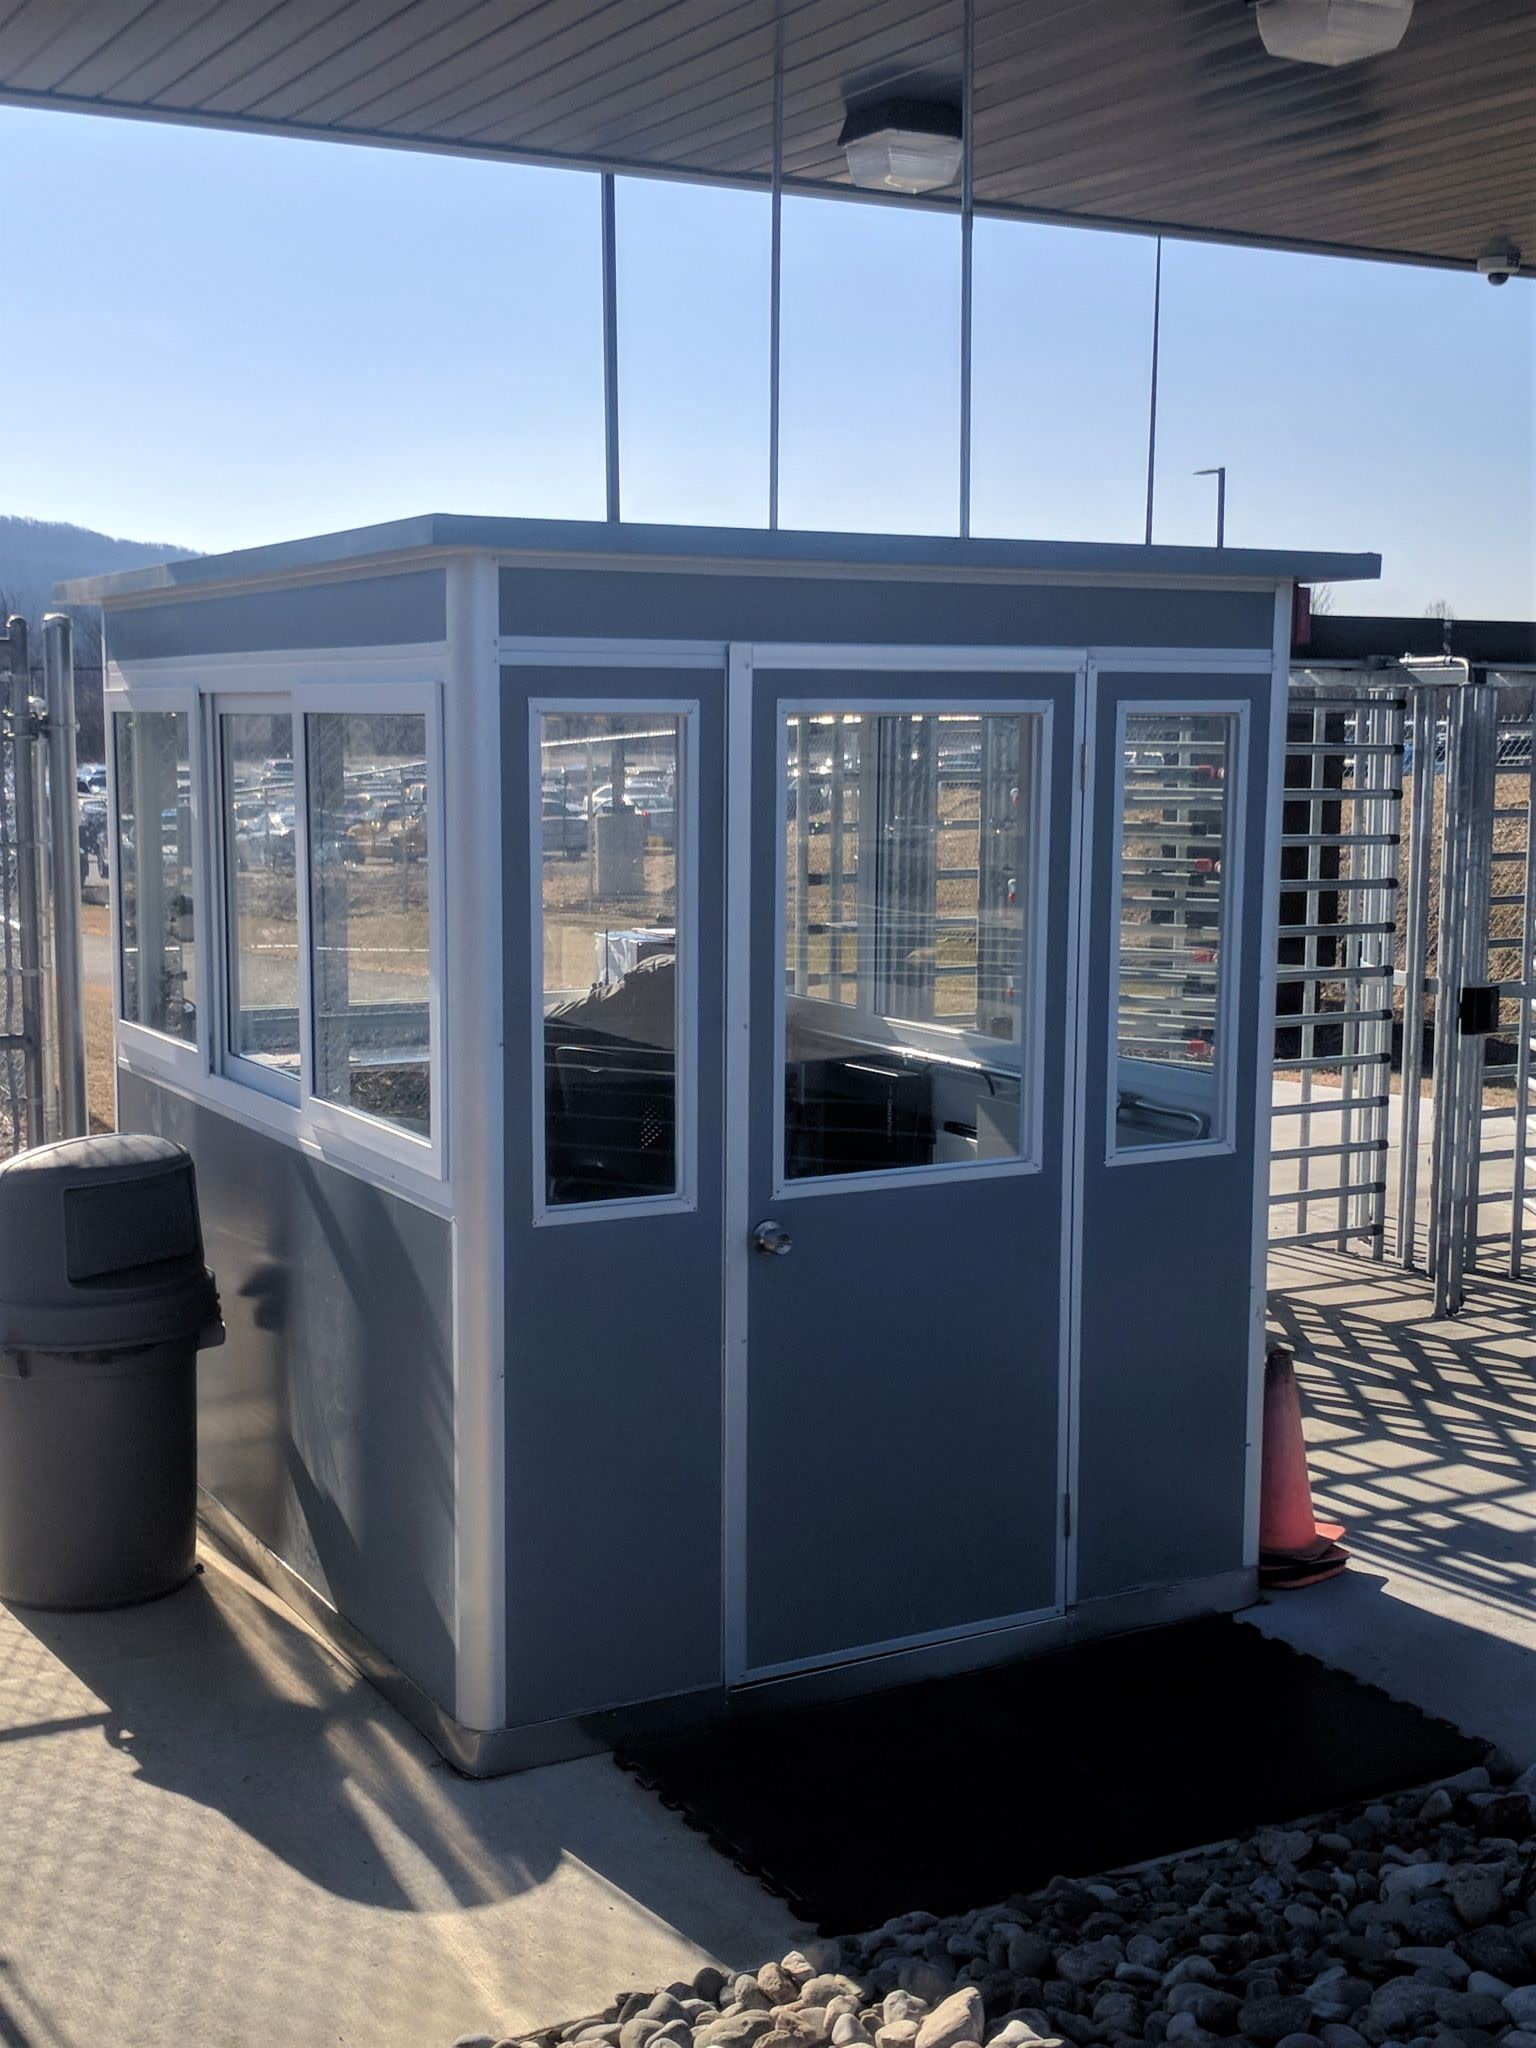 security booth for physical access control